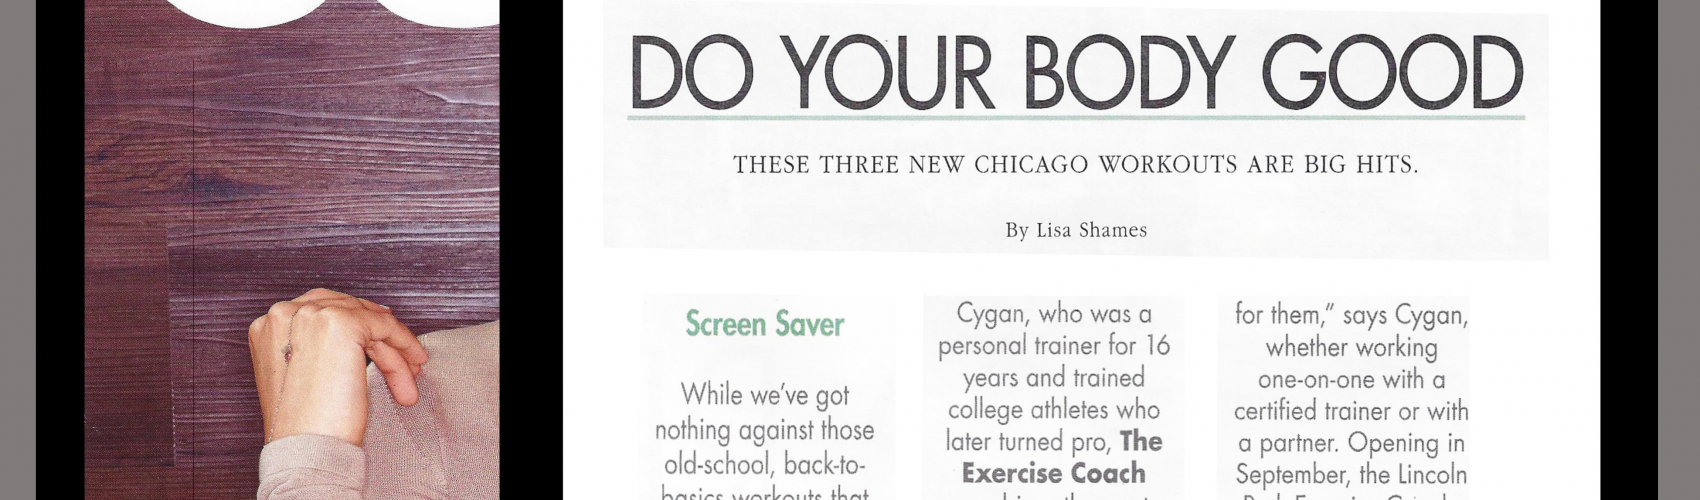 Modern Luxury Magazine: New Exercise Coach Studio to Open in Lincoln Park